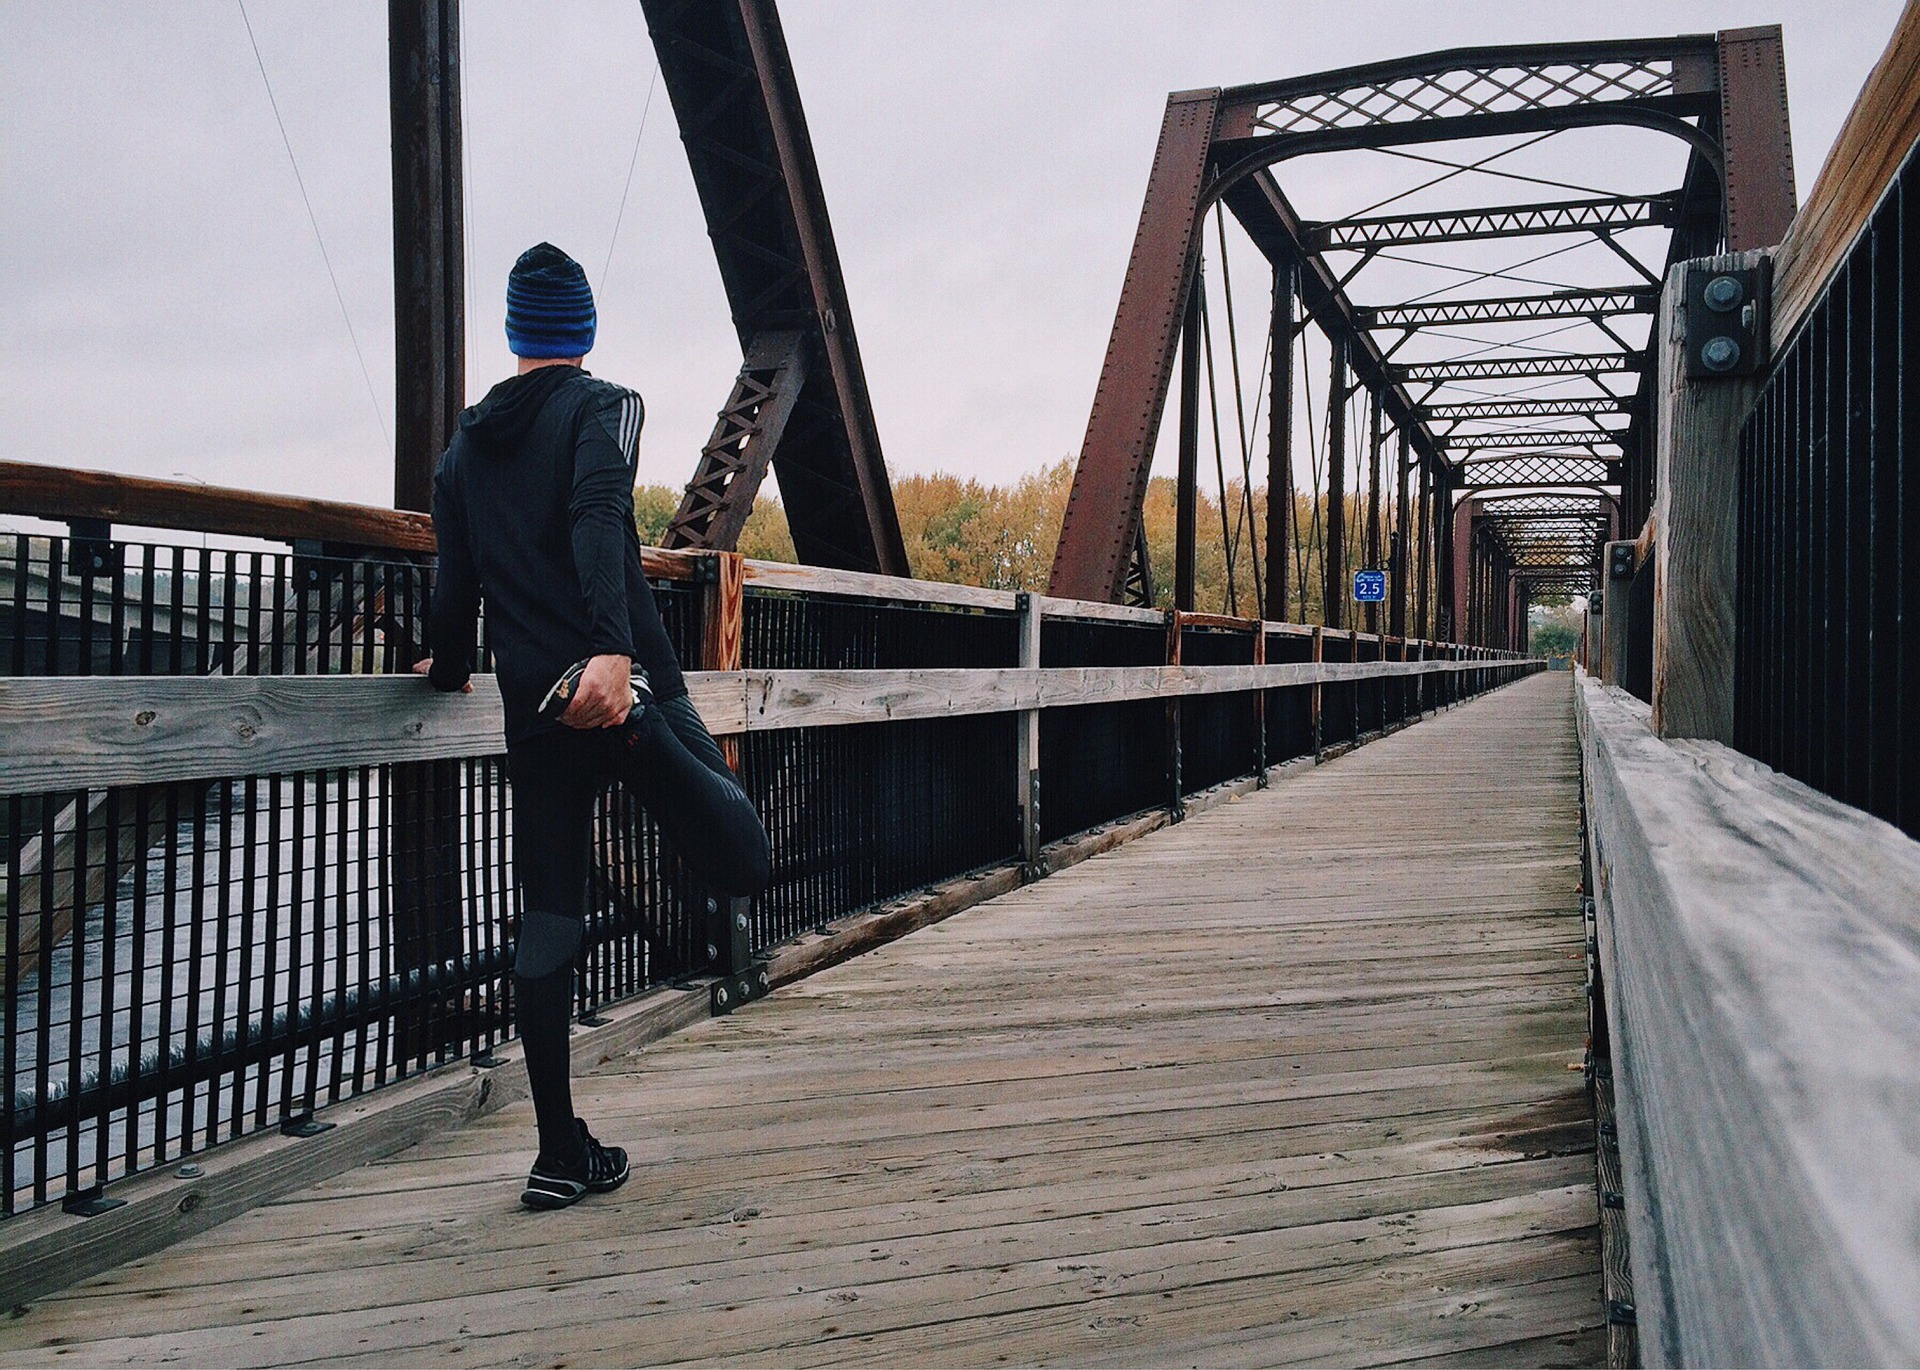 10K run stretching while on bridge